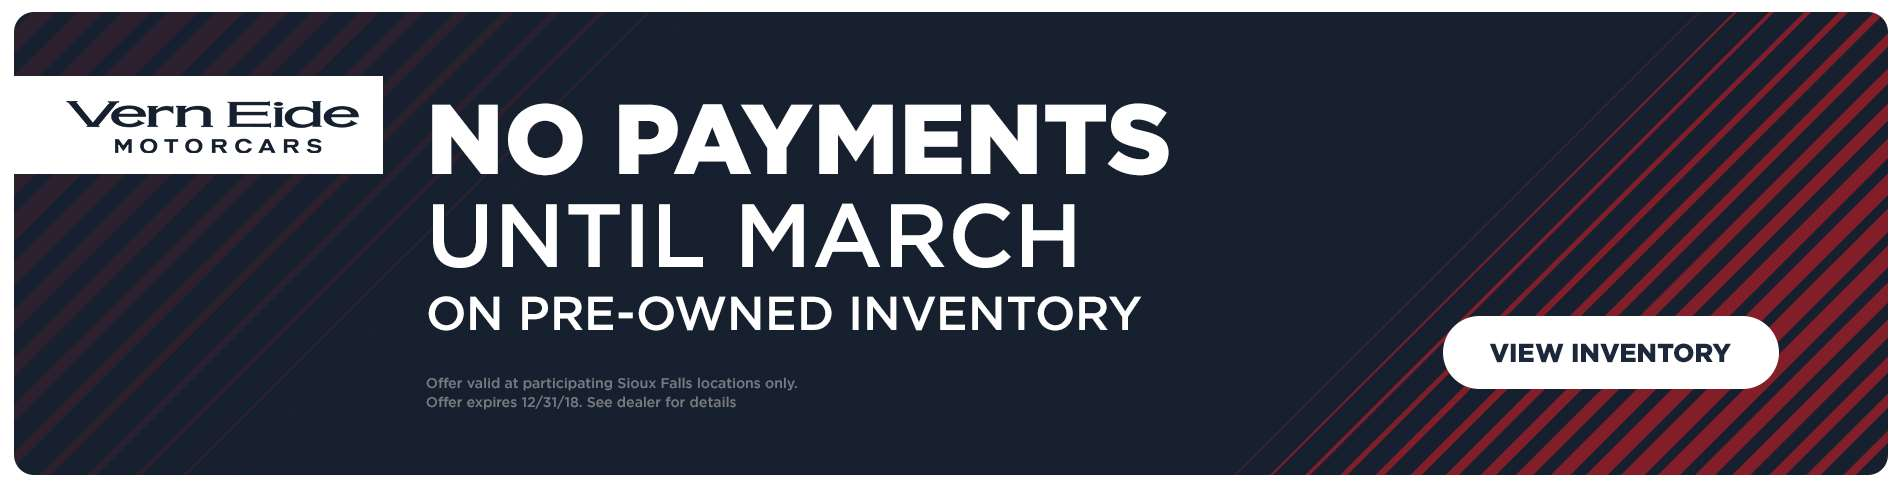 No Payments Till March